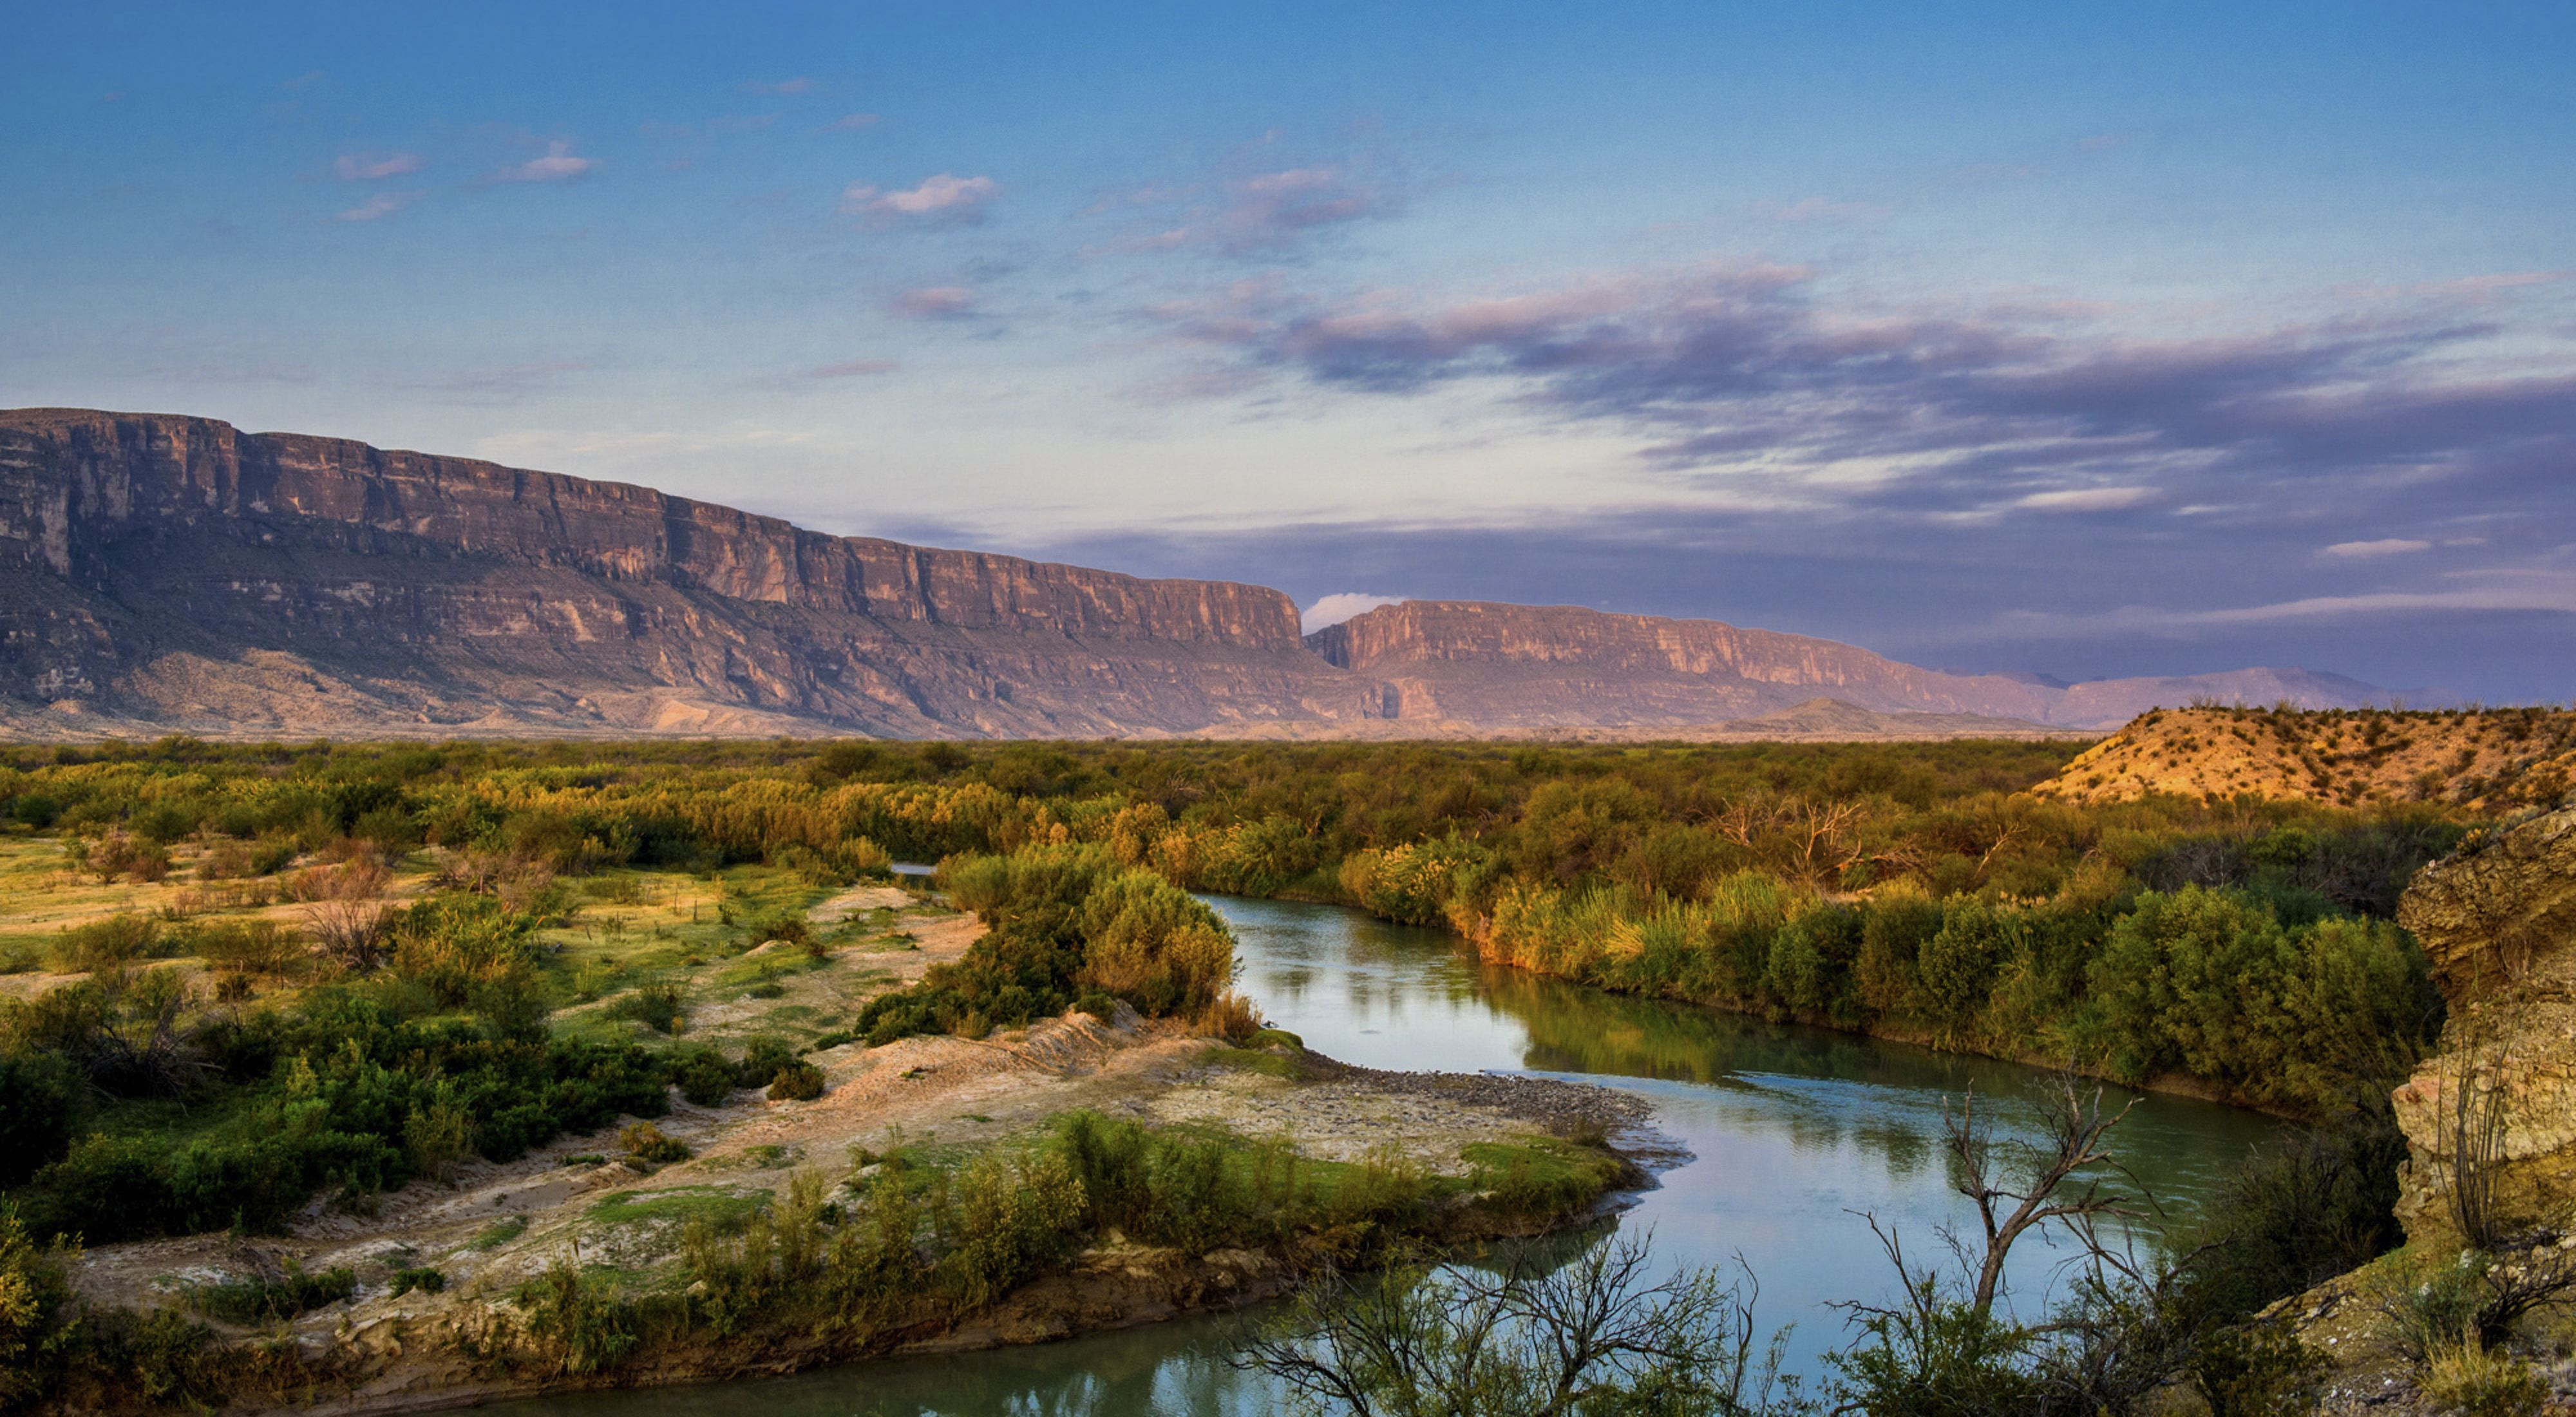 a view of the rio grande and a canyon in the background against a sunset sky